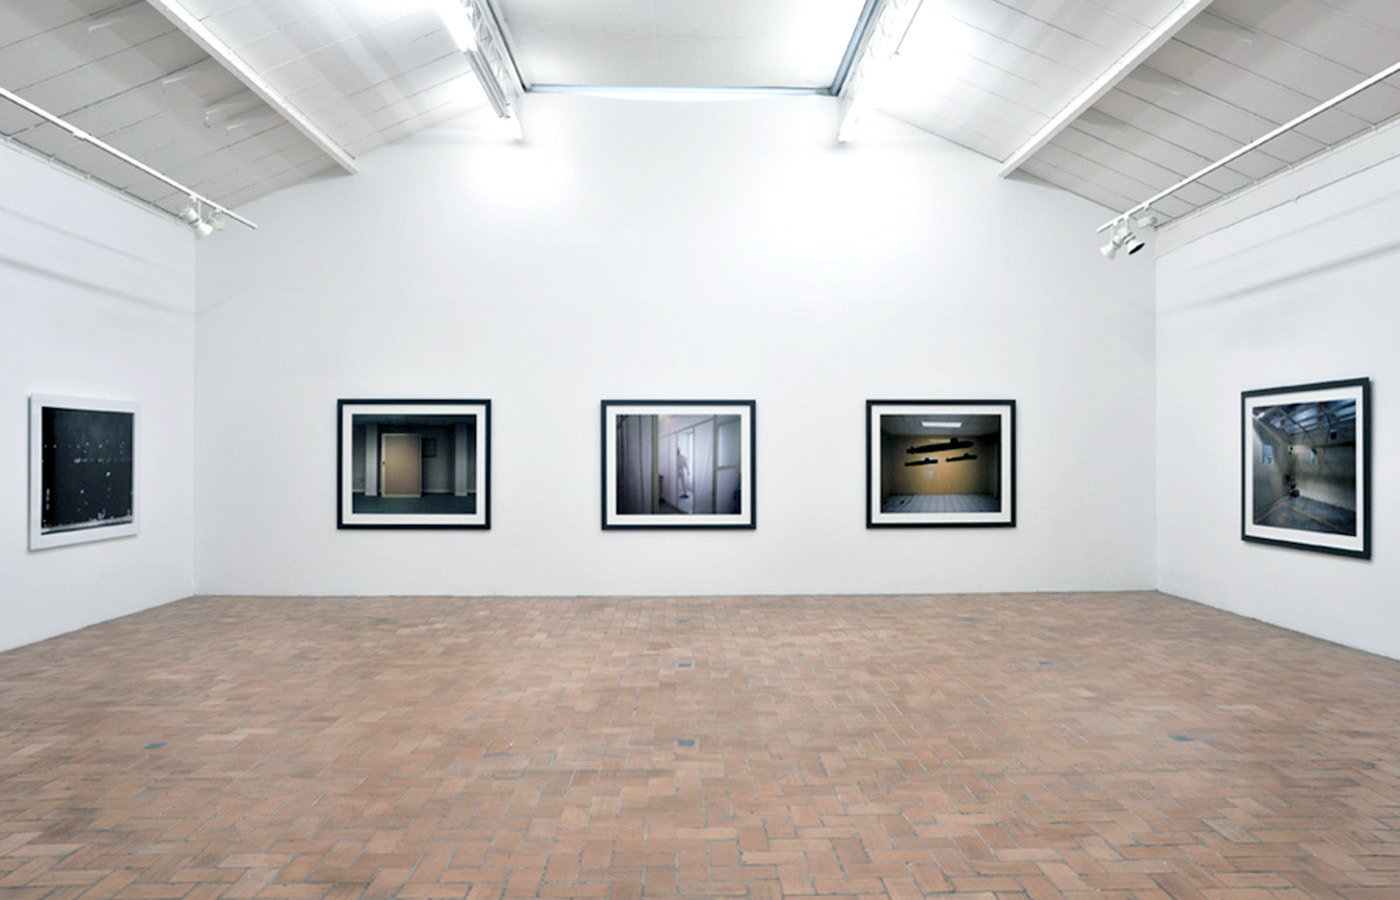 Exhibition view - Proof - Galerie in situ - Fabienne Leclerc, Paris, 2009